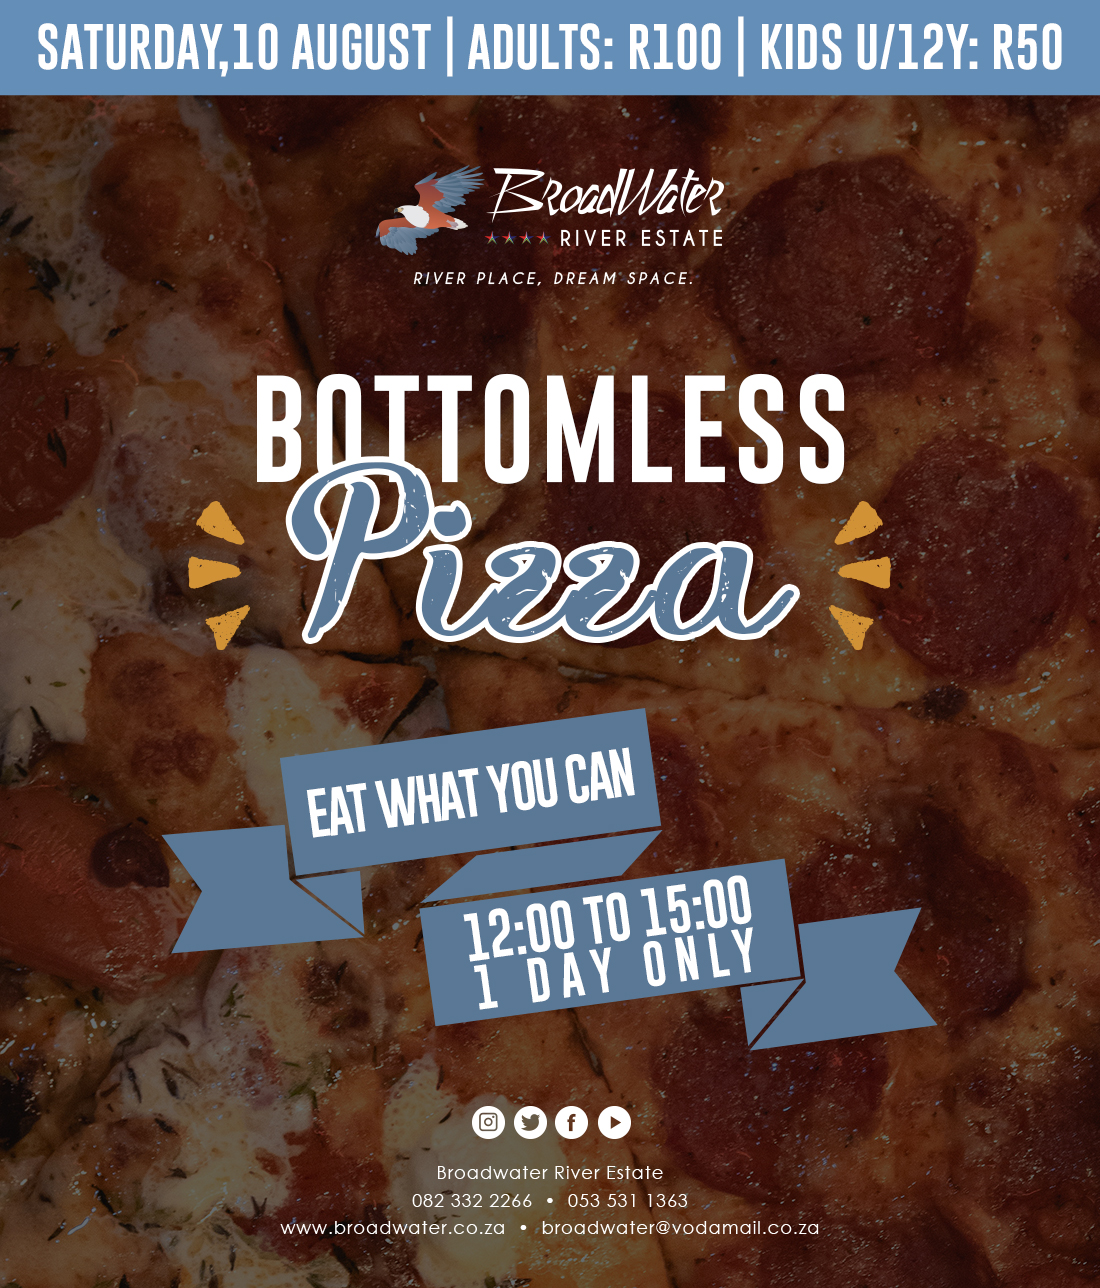 bottomless pizza eat what you can